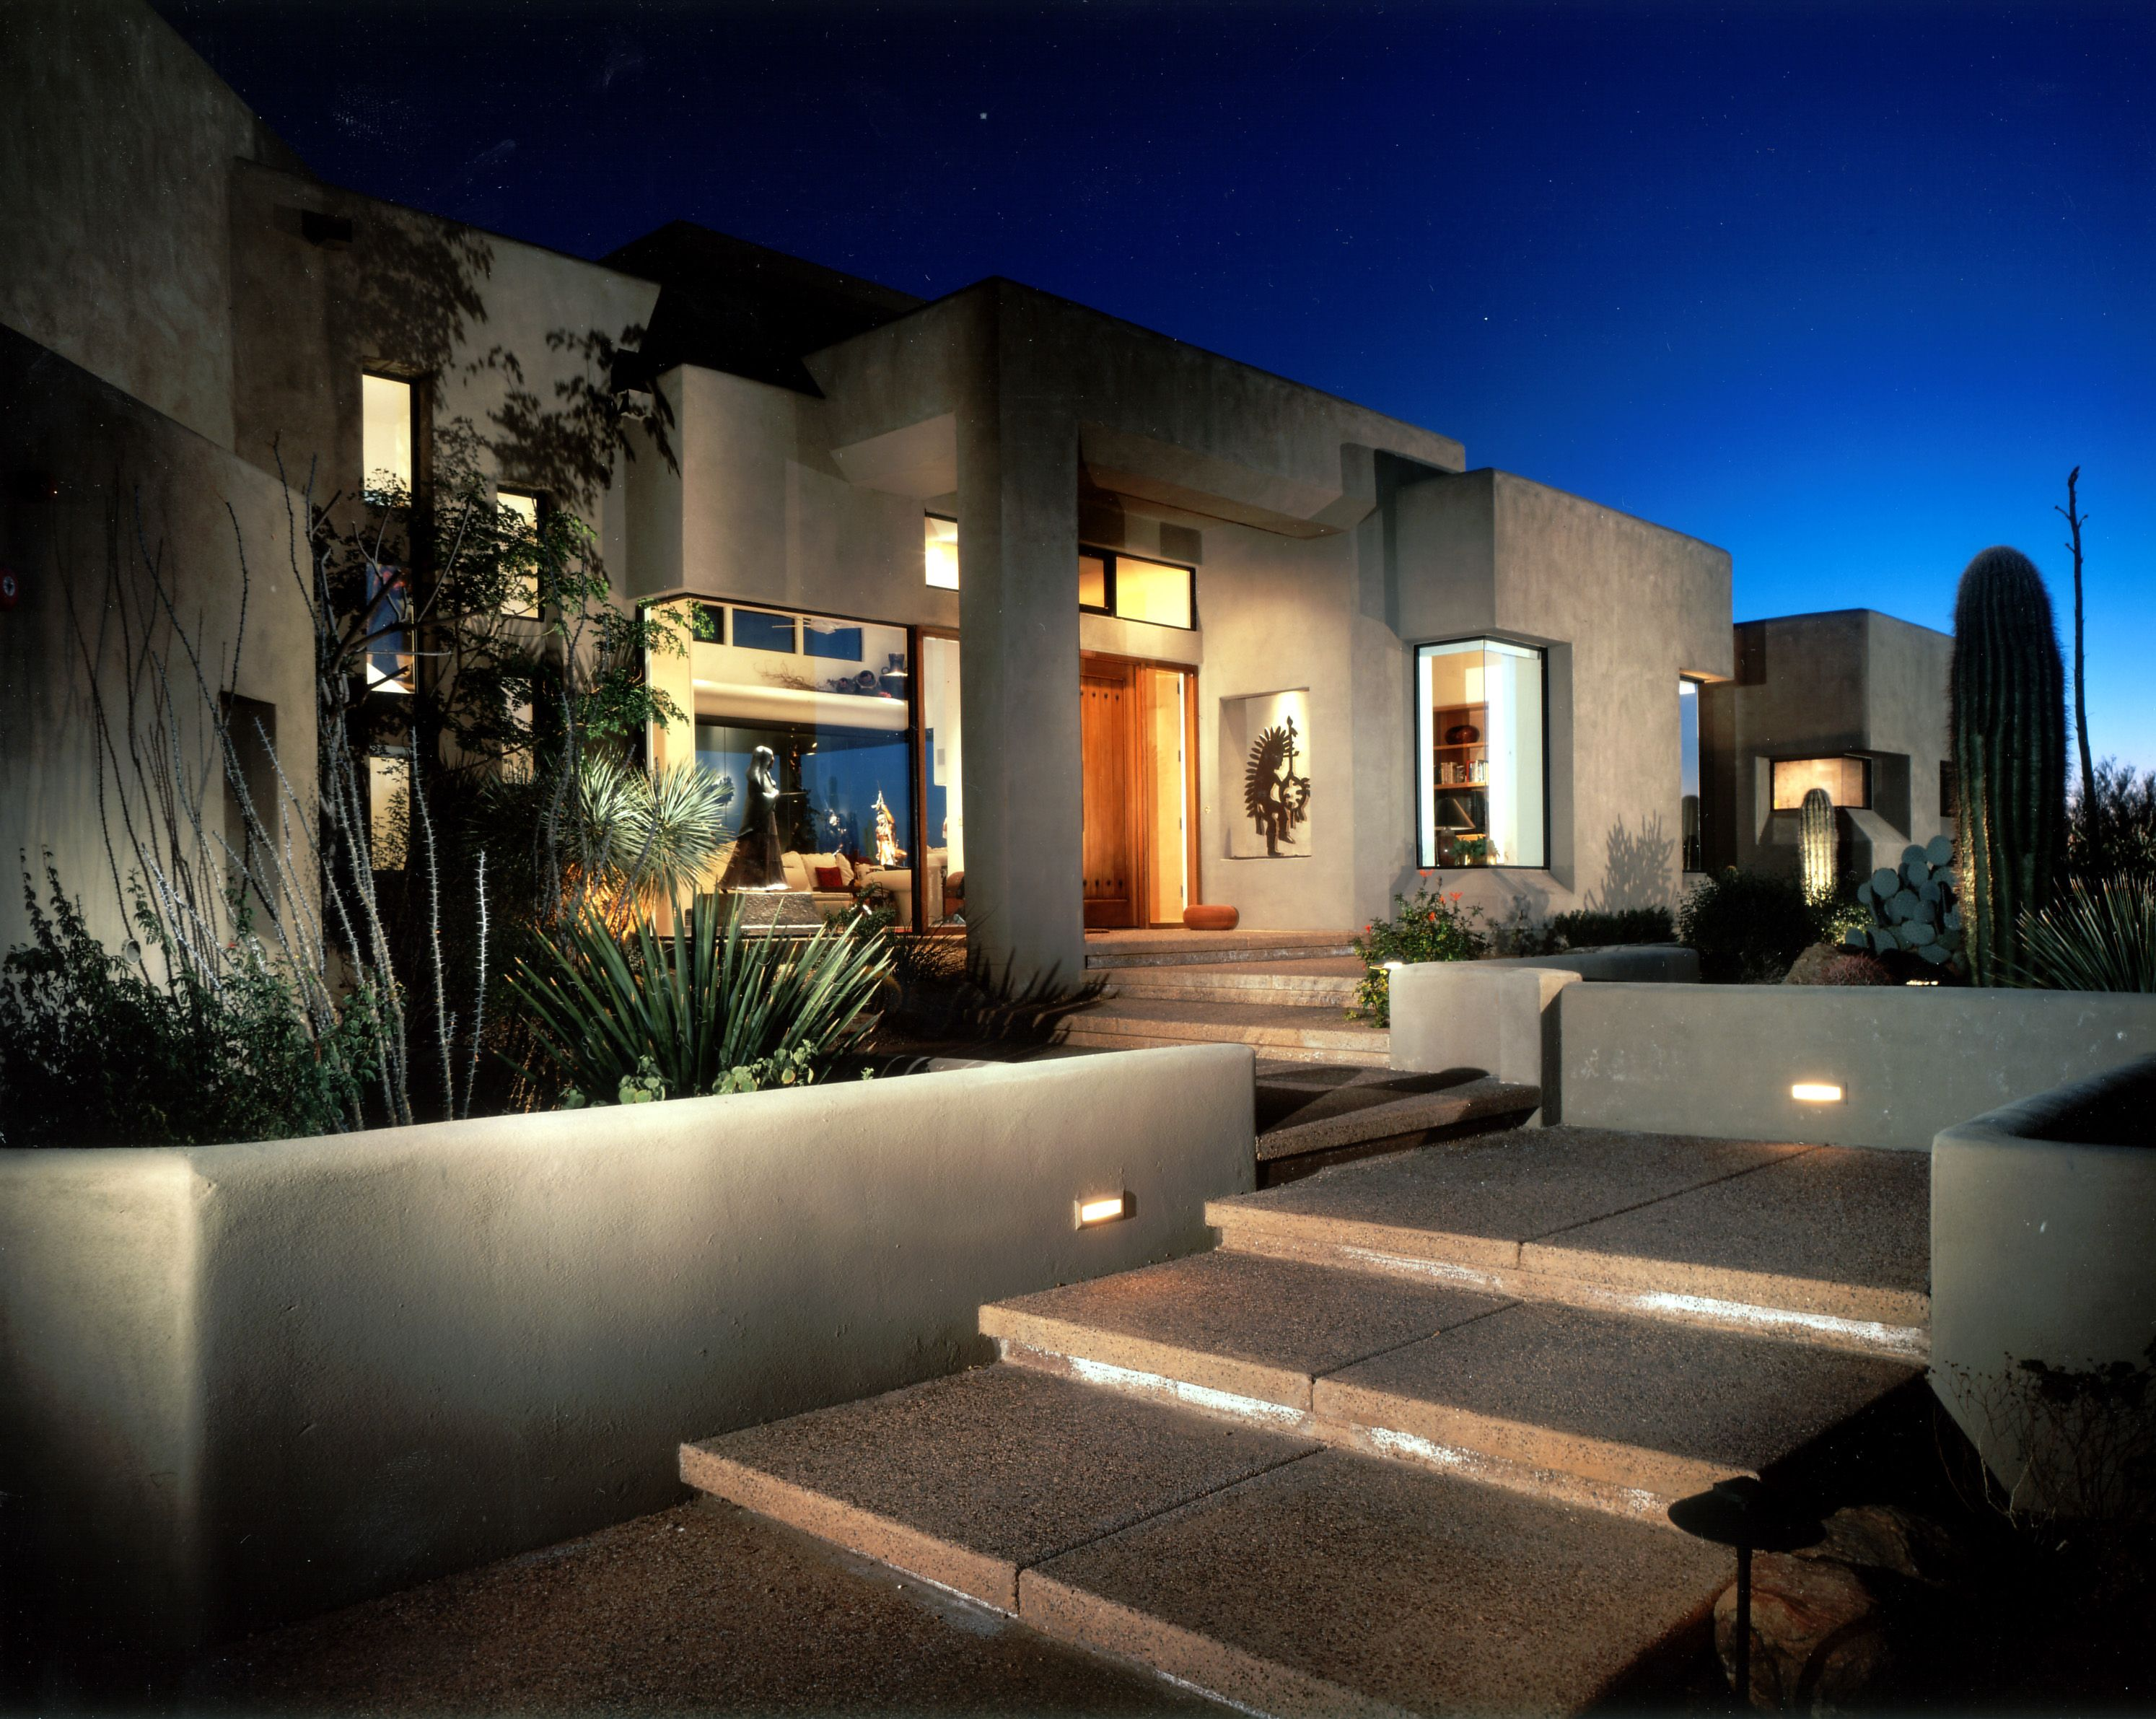 Outdoor Night Lighting Really Adds Drama To Our Design In Desert Mountain Scottsdale Green Wall Design Residential Design Overhead Hanging Lights